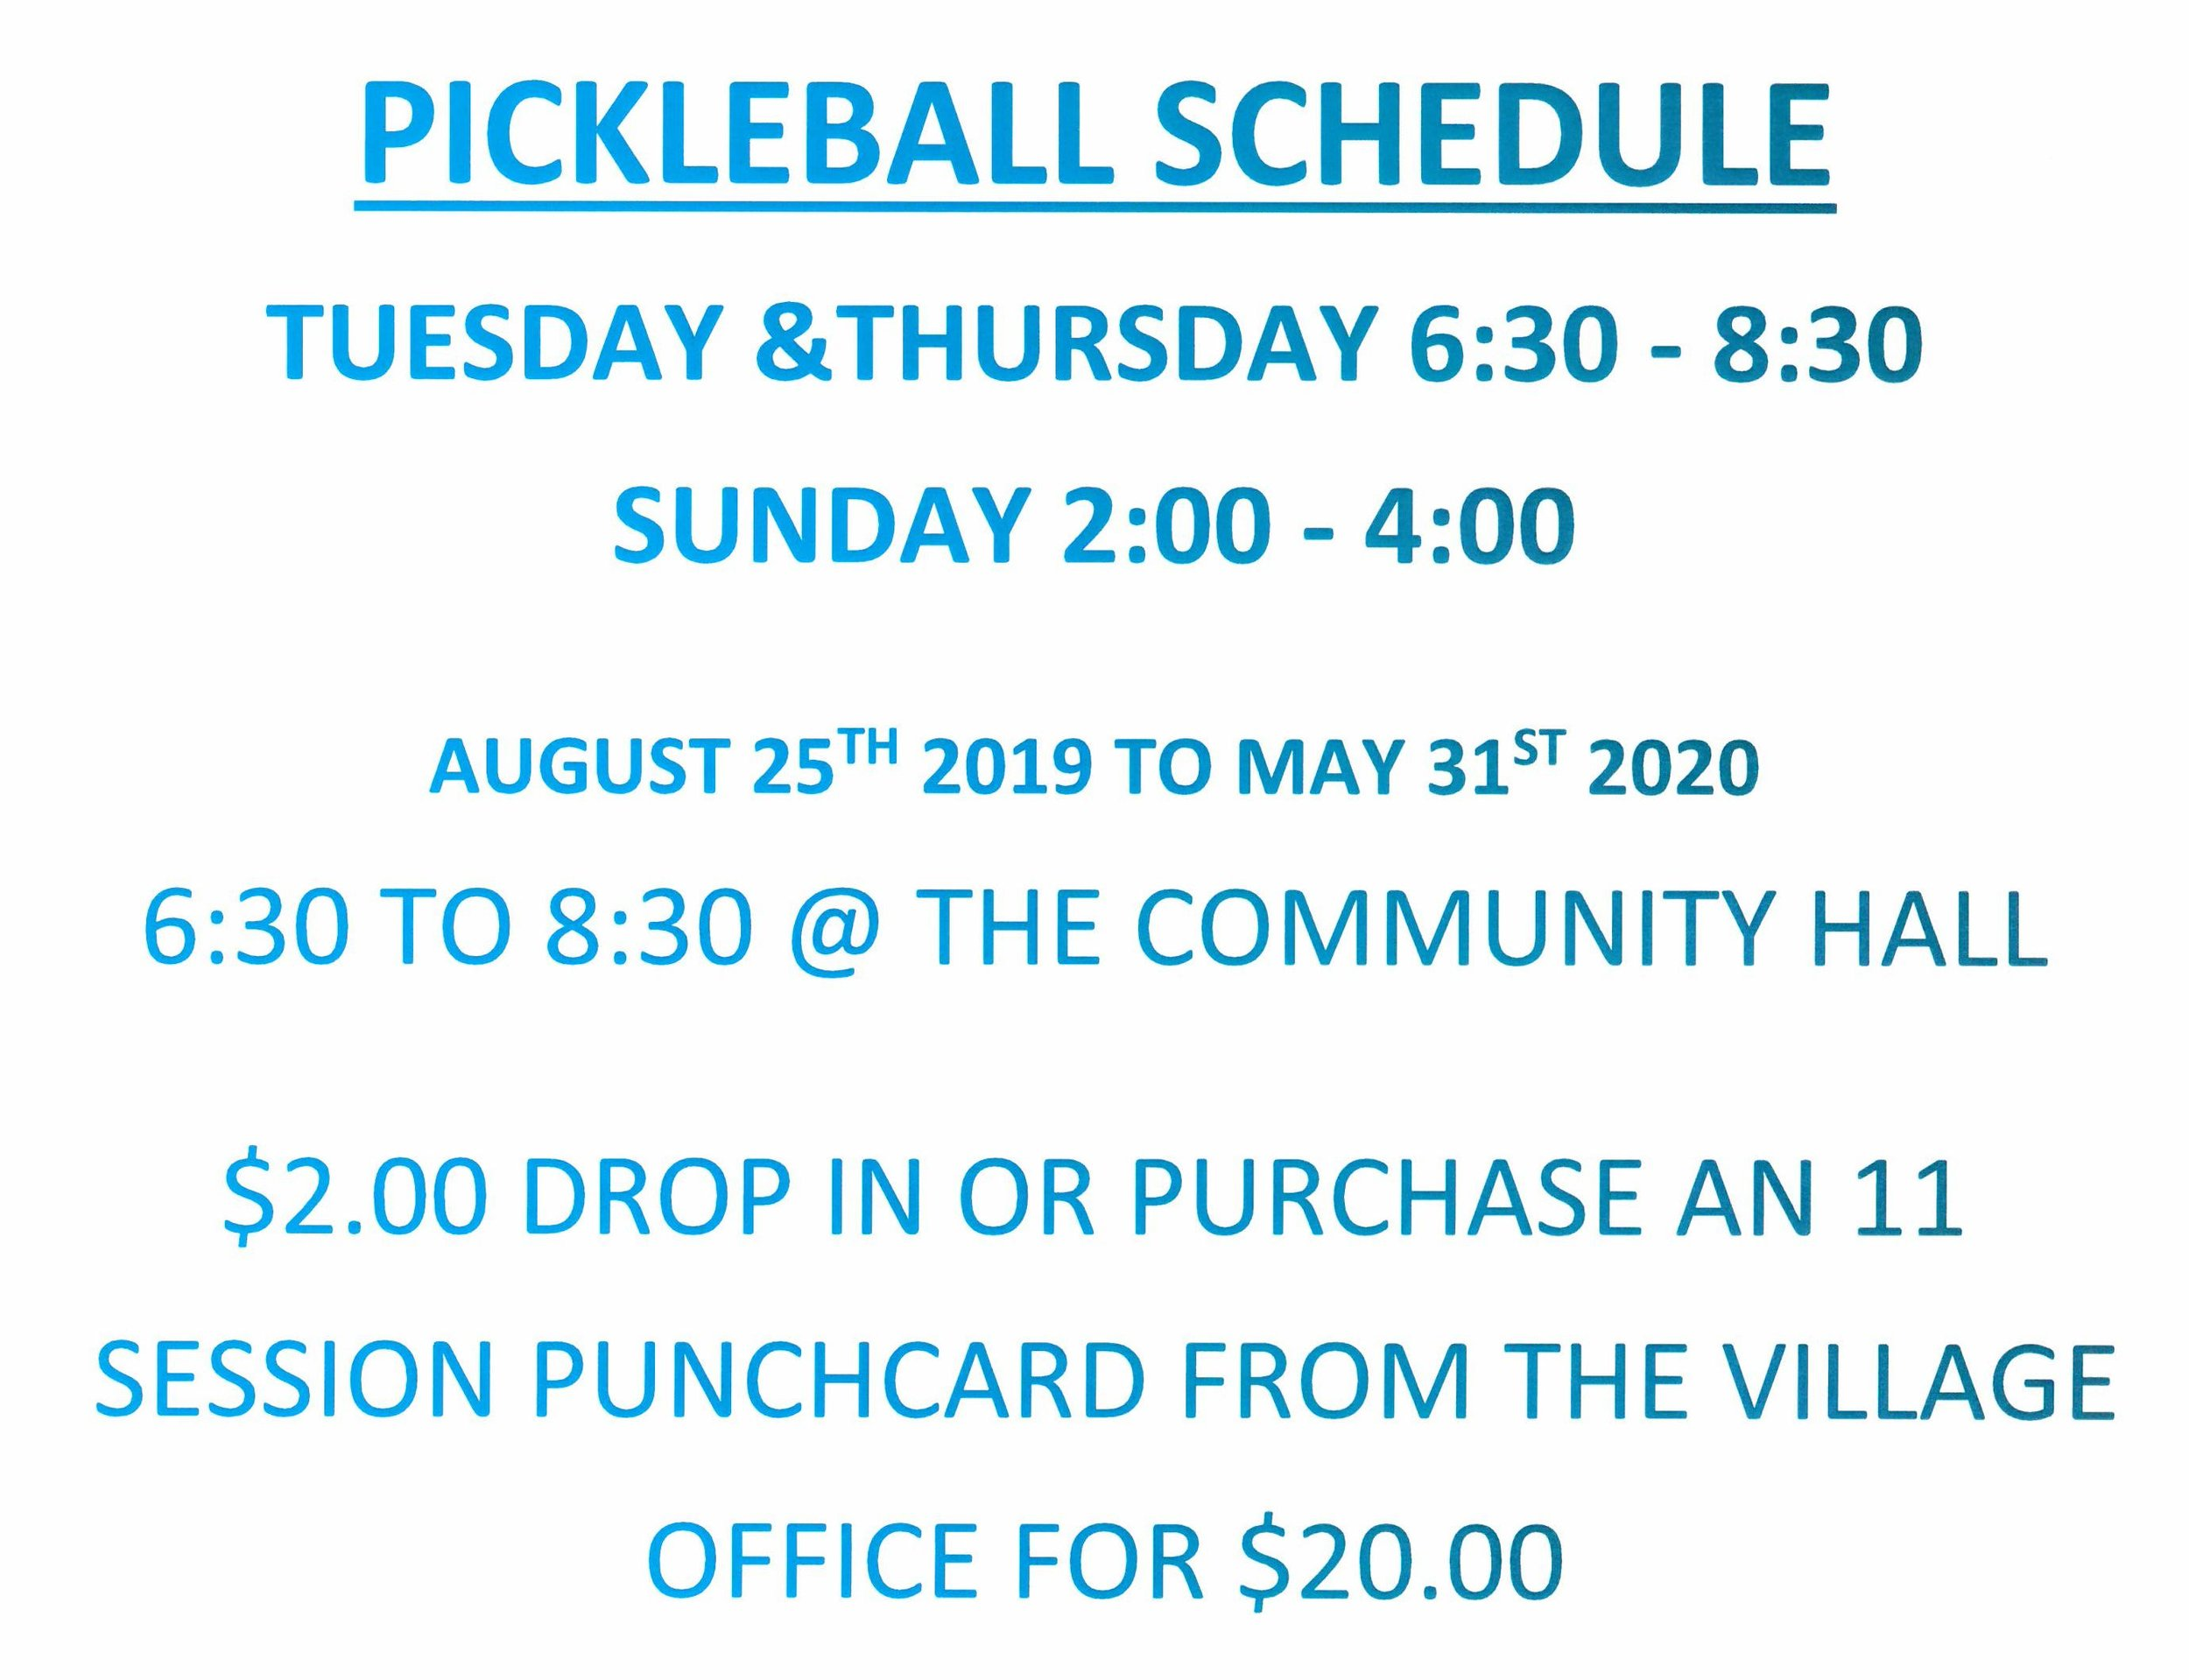 Pickle Ball Poster August 25 2019 to May 31 2020.jpg